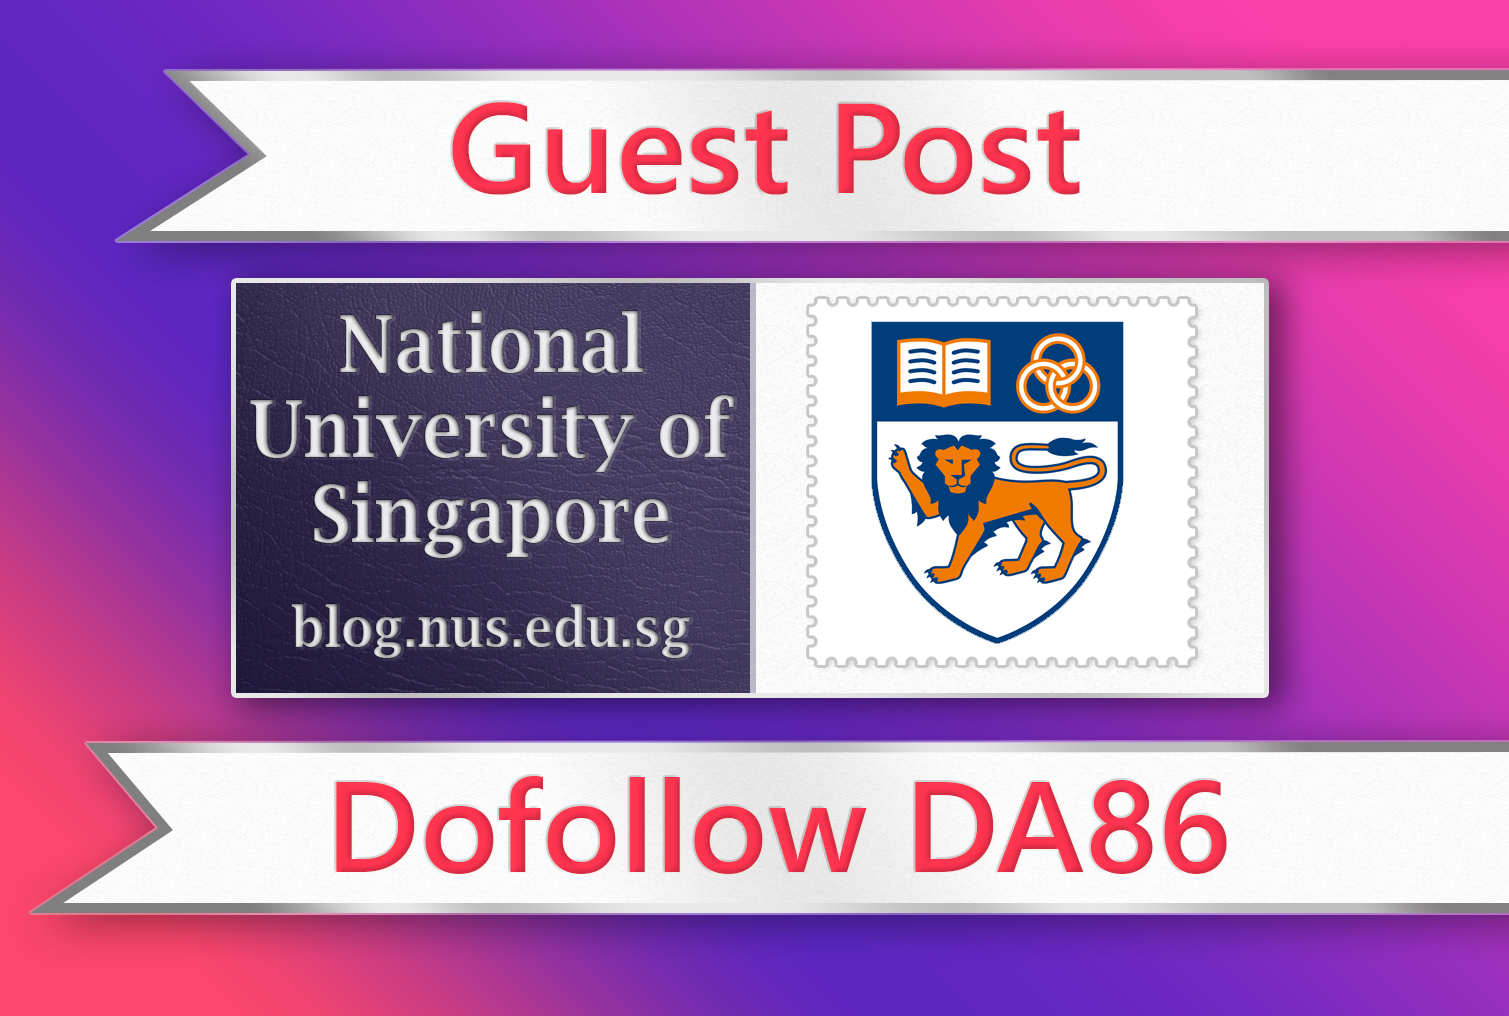 Guest post on Singapore - DA86